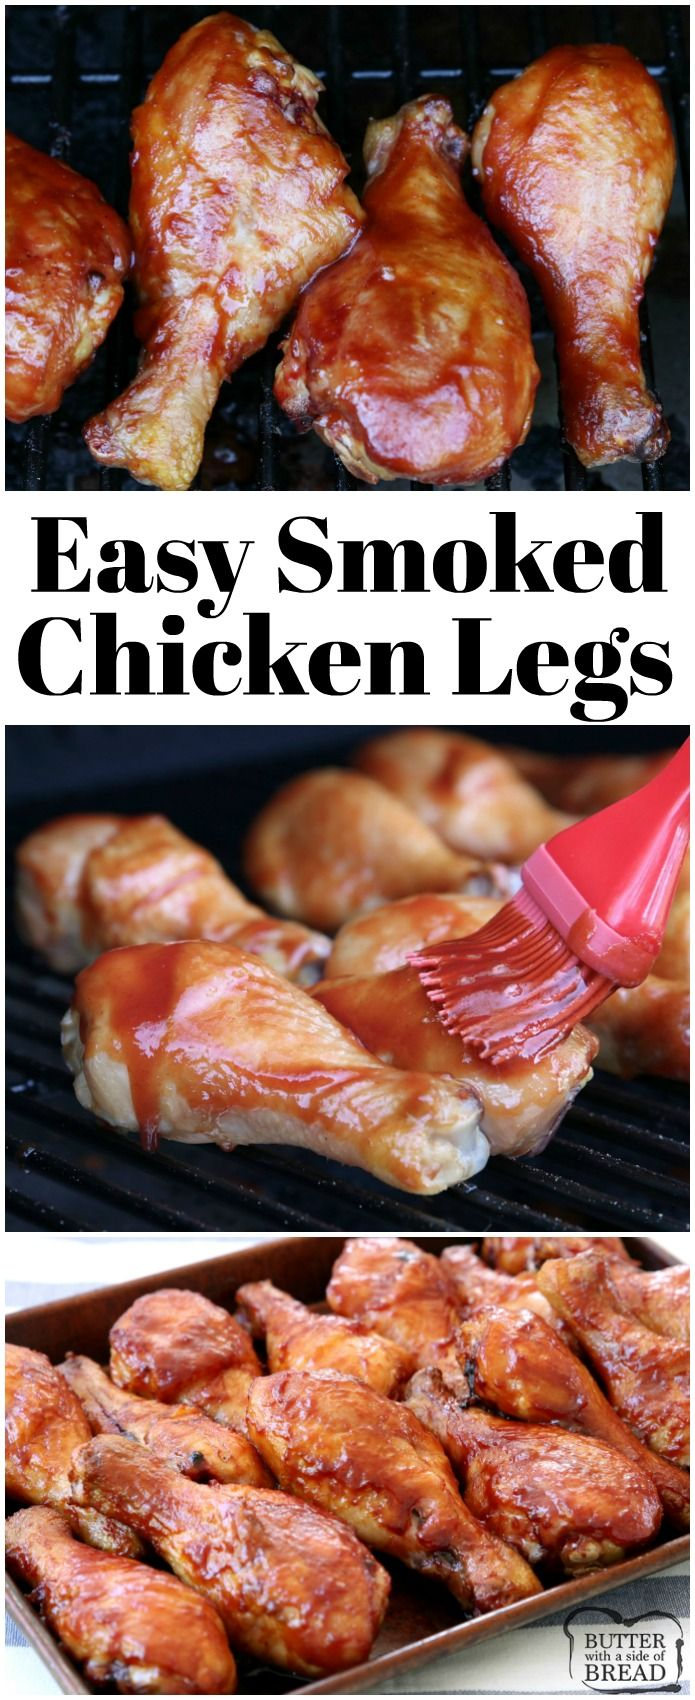 Easy Smoked Chicken Legs made with just a few simple ingredients in 2 hours. Simple recipe for smoking chicken drumsticks during your next BBQ. Perfect recipe to start learning how to use your electric smoker!#chicken #chickenlegs #traeger #smoke #smoker #dinner #grill #food #grillingrecipes